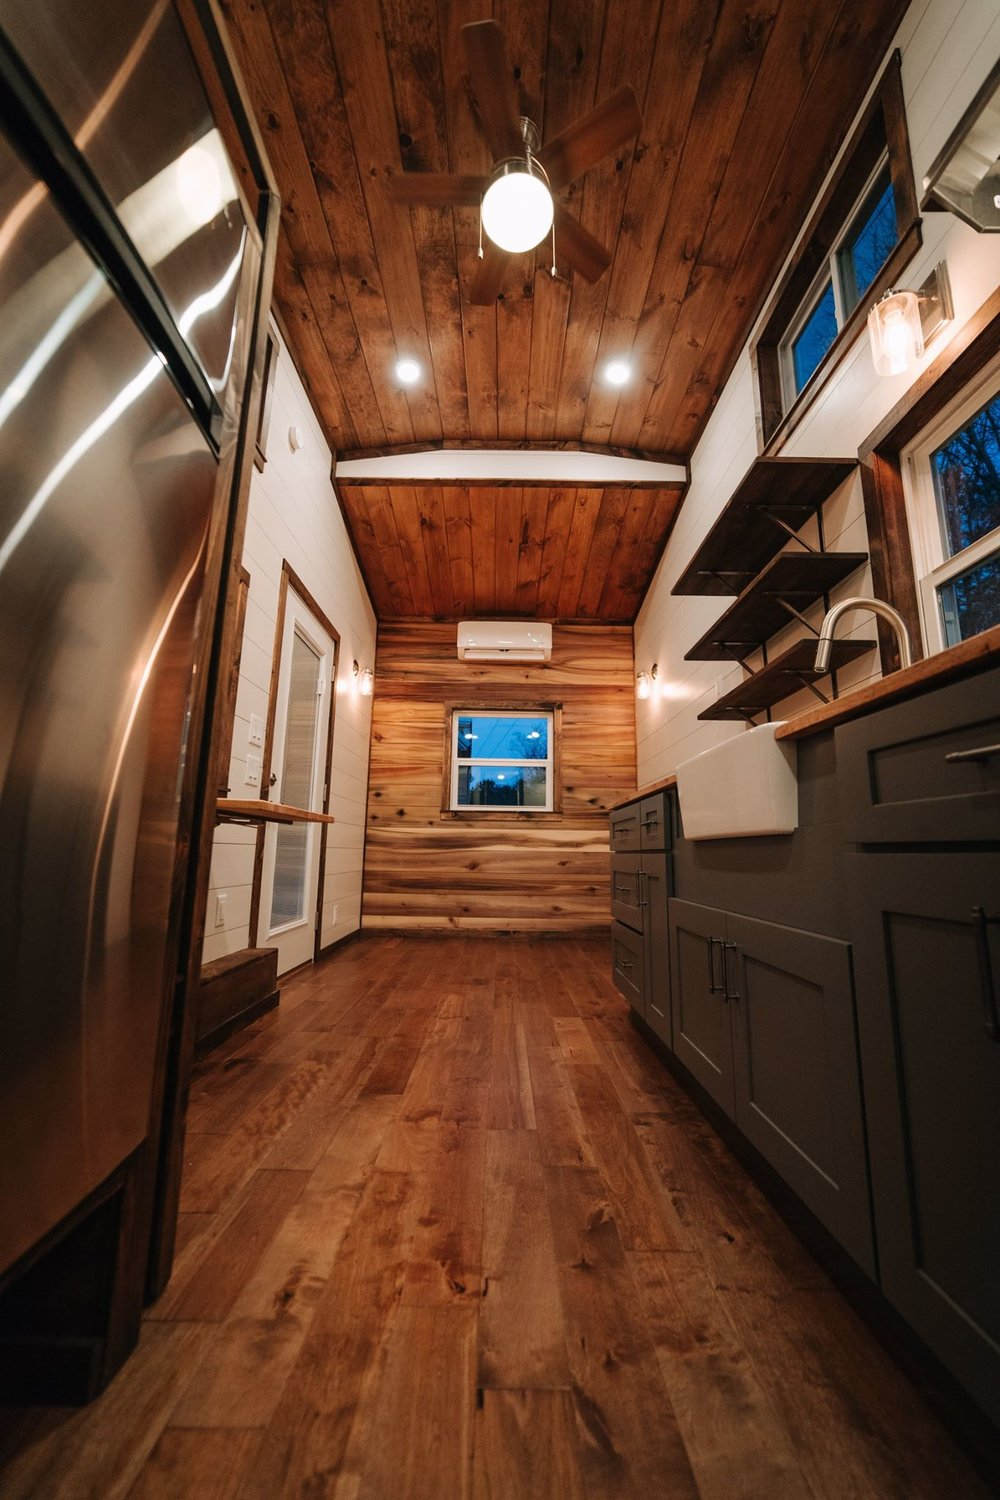 noah-wind-river-tiny-homes-15.jpg